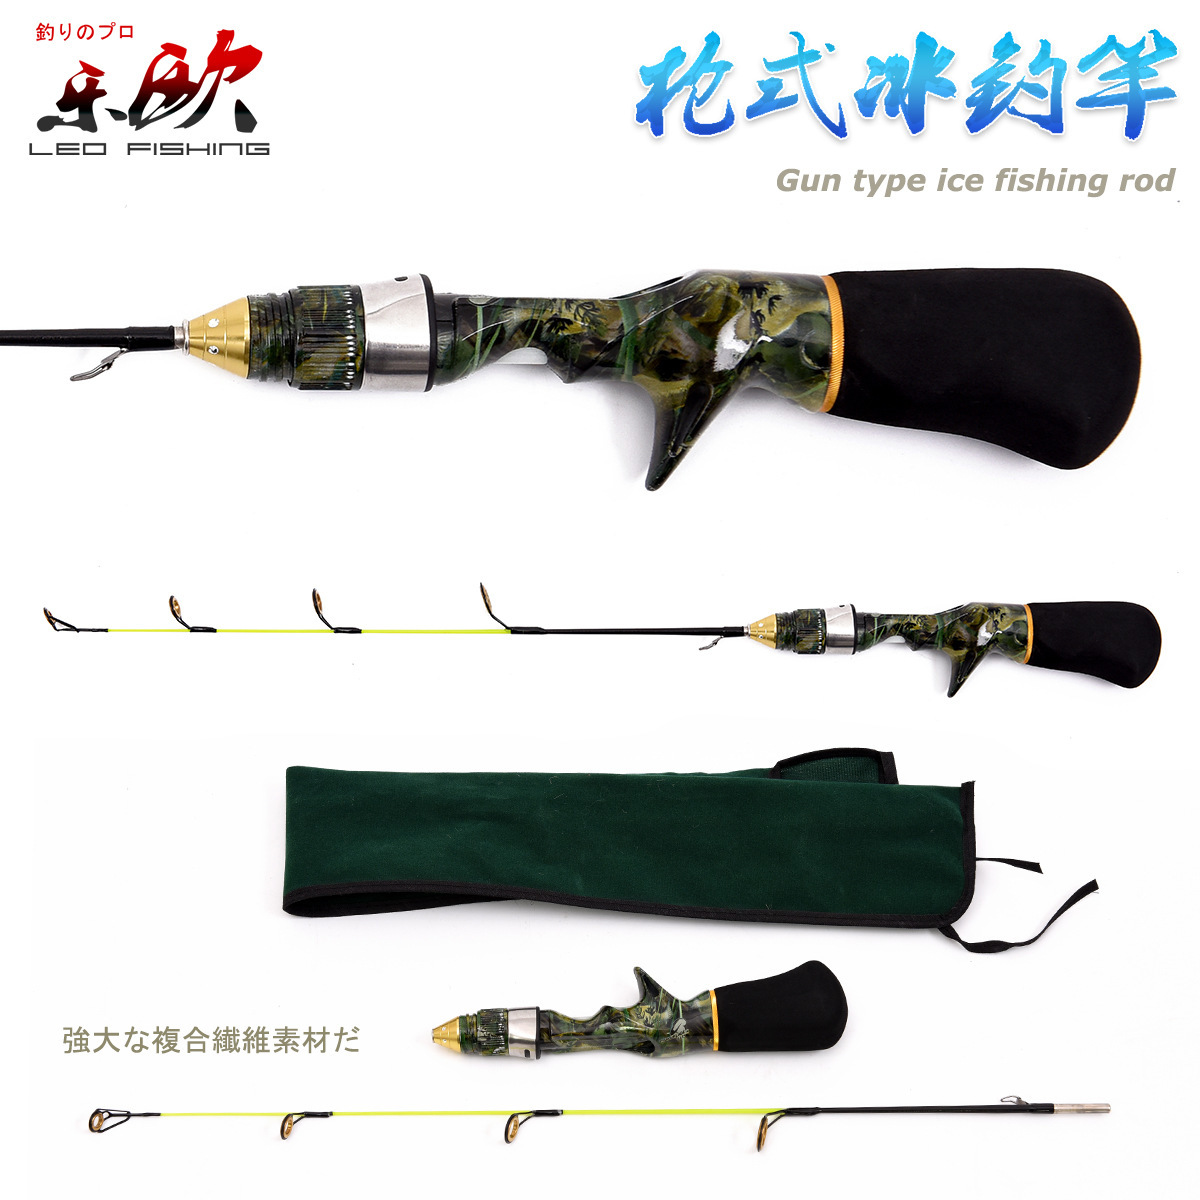 Miniature gun ice raft reef shore carp fishing rod with a solid rod to hold fish and fishing gear